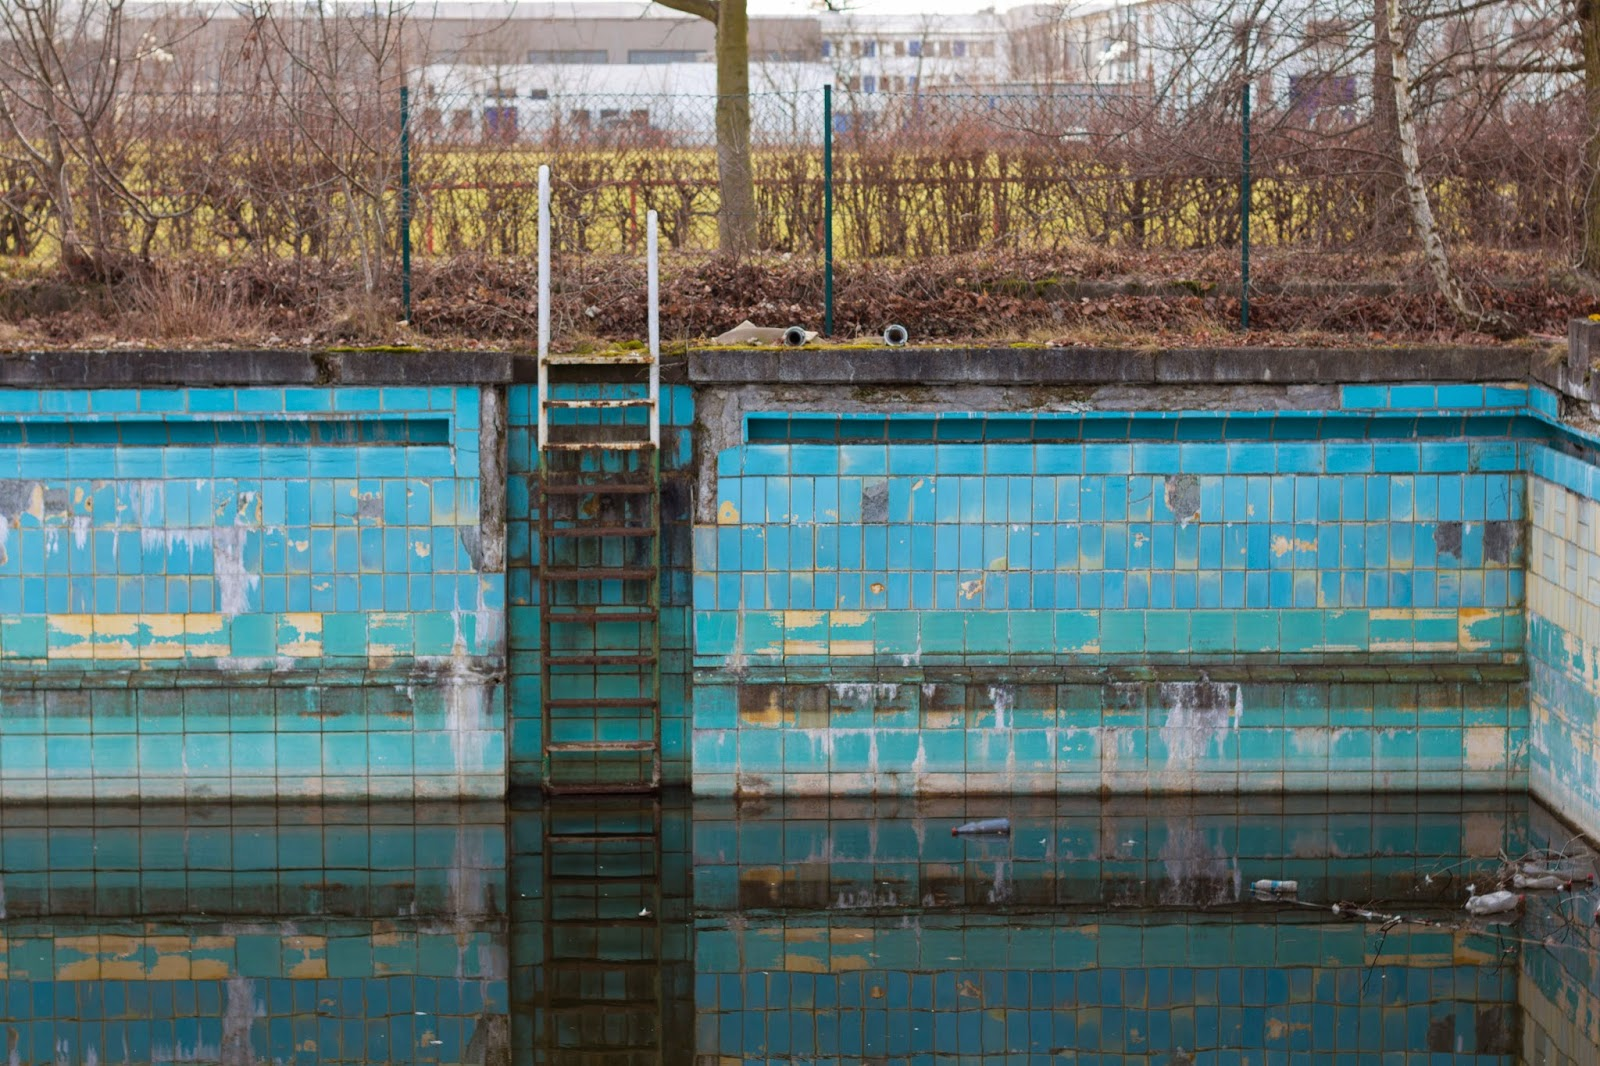 Swimming prohibited bvg stadion and freibad lichtenberg - The last picture show swimming pool scene ...